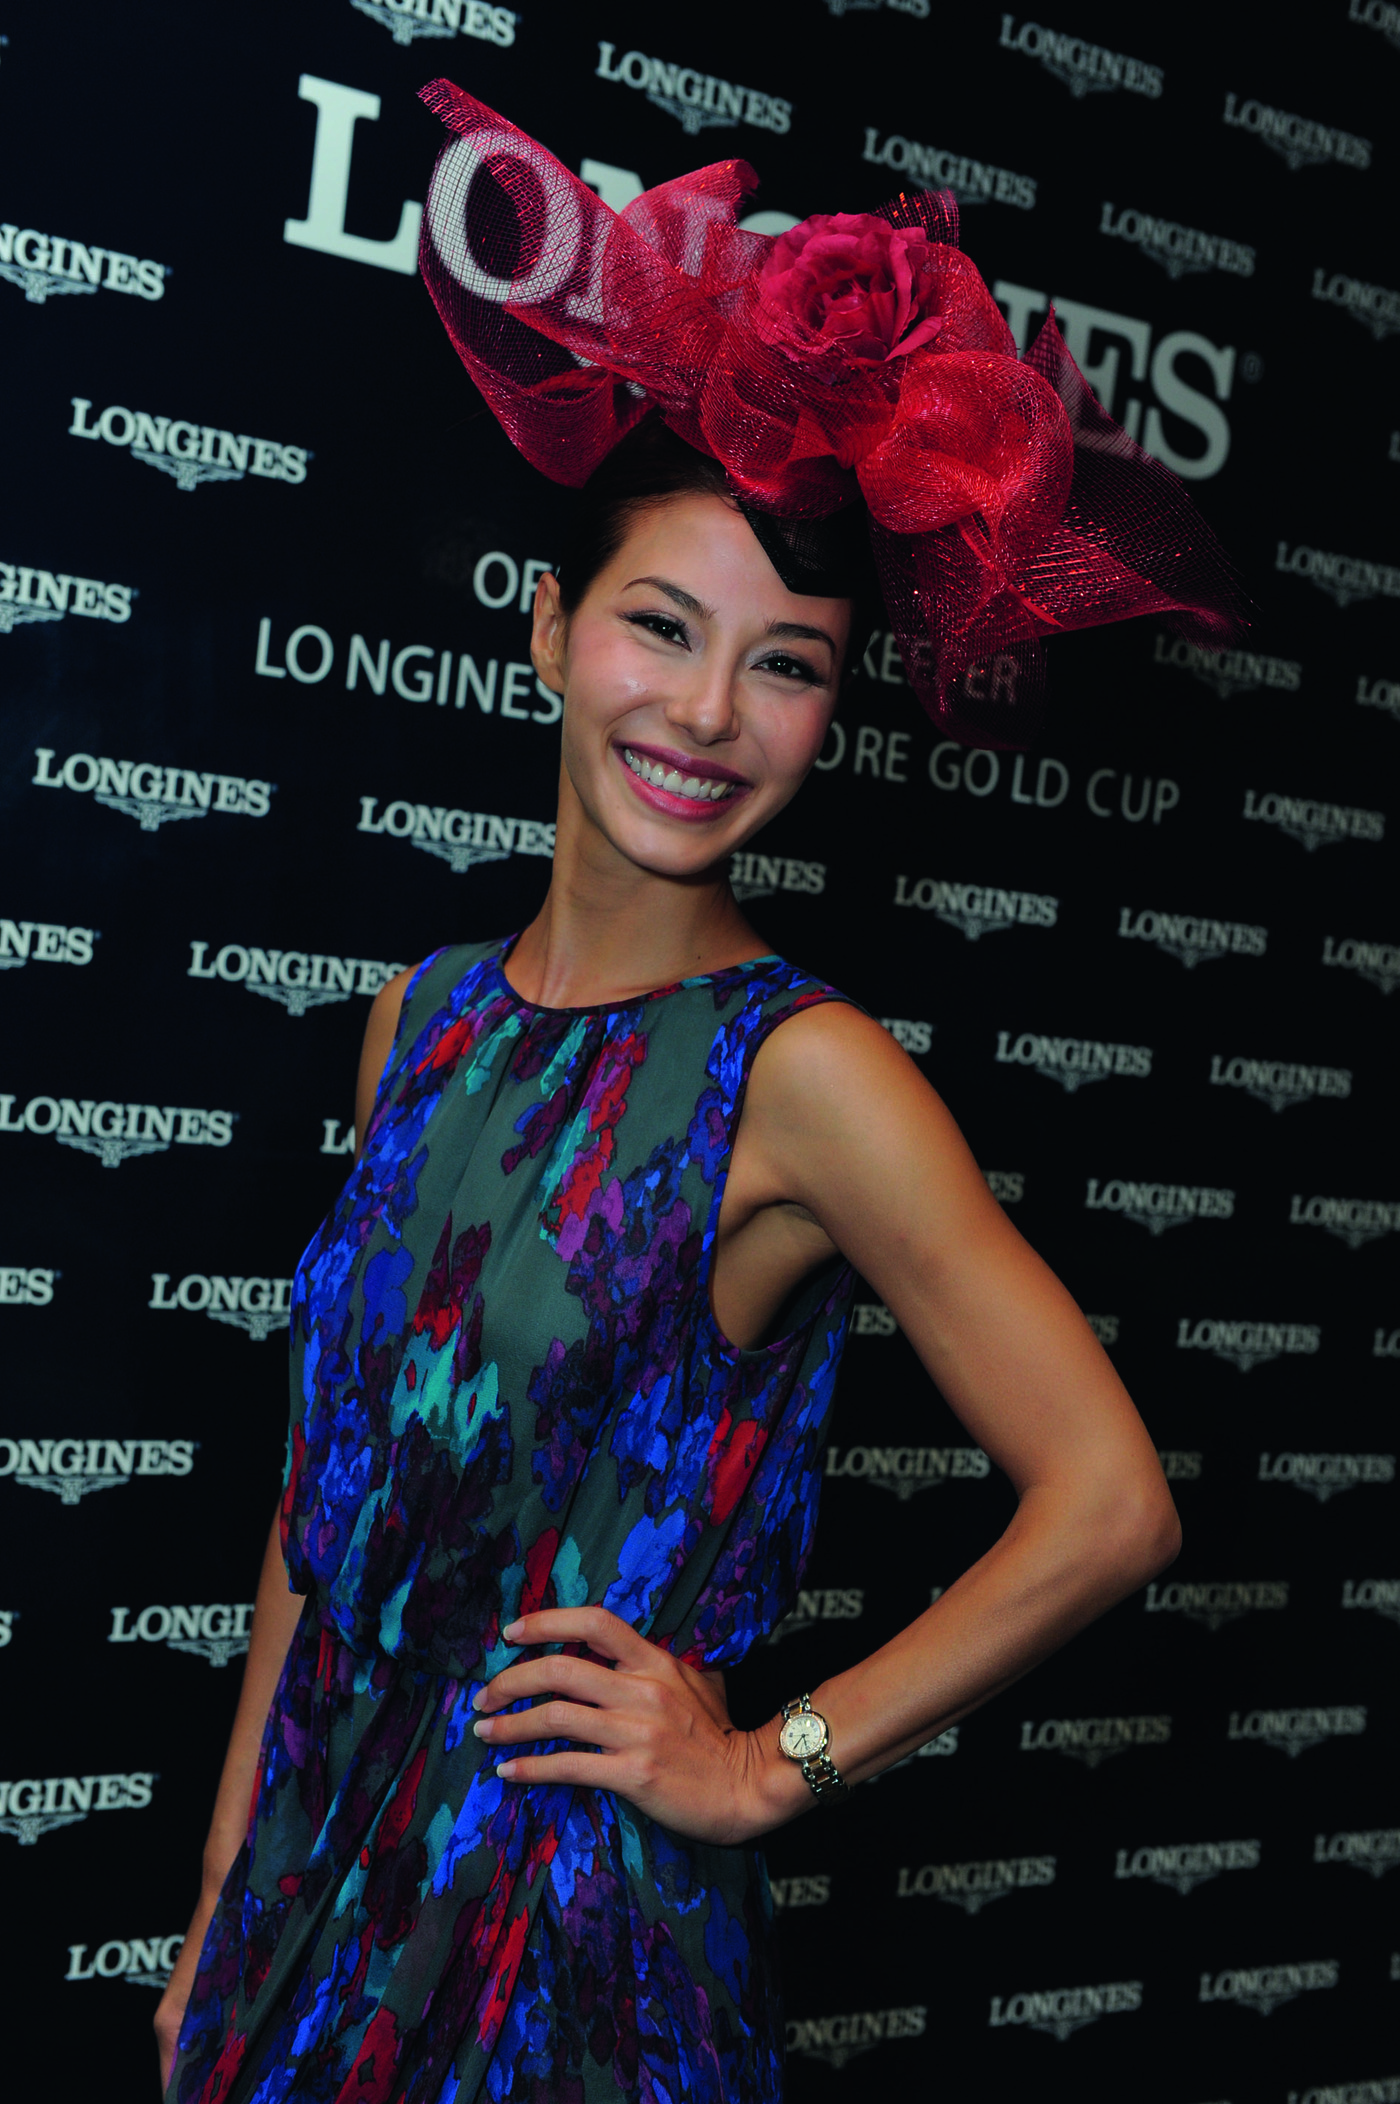 Longines Flat Racing Event: Longines embarks on landmark partnership with the Singapore Turf Club and launches the Longines Singapore Gold Cup 1